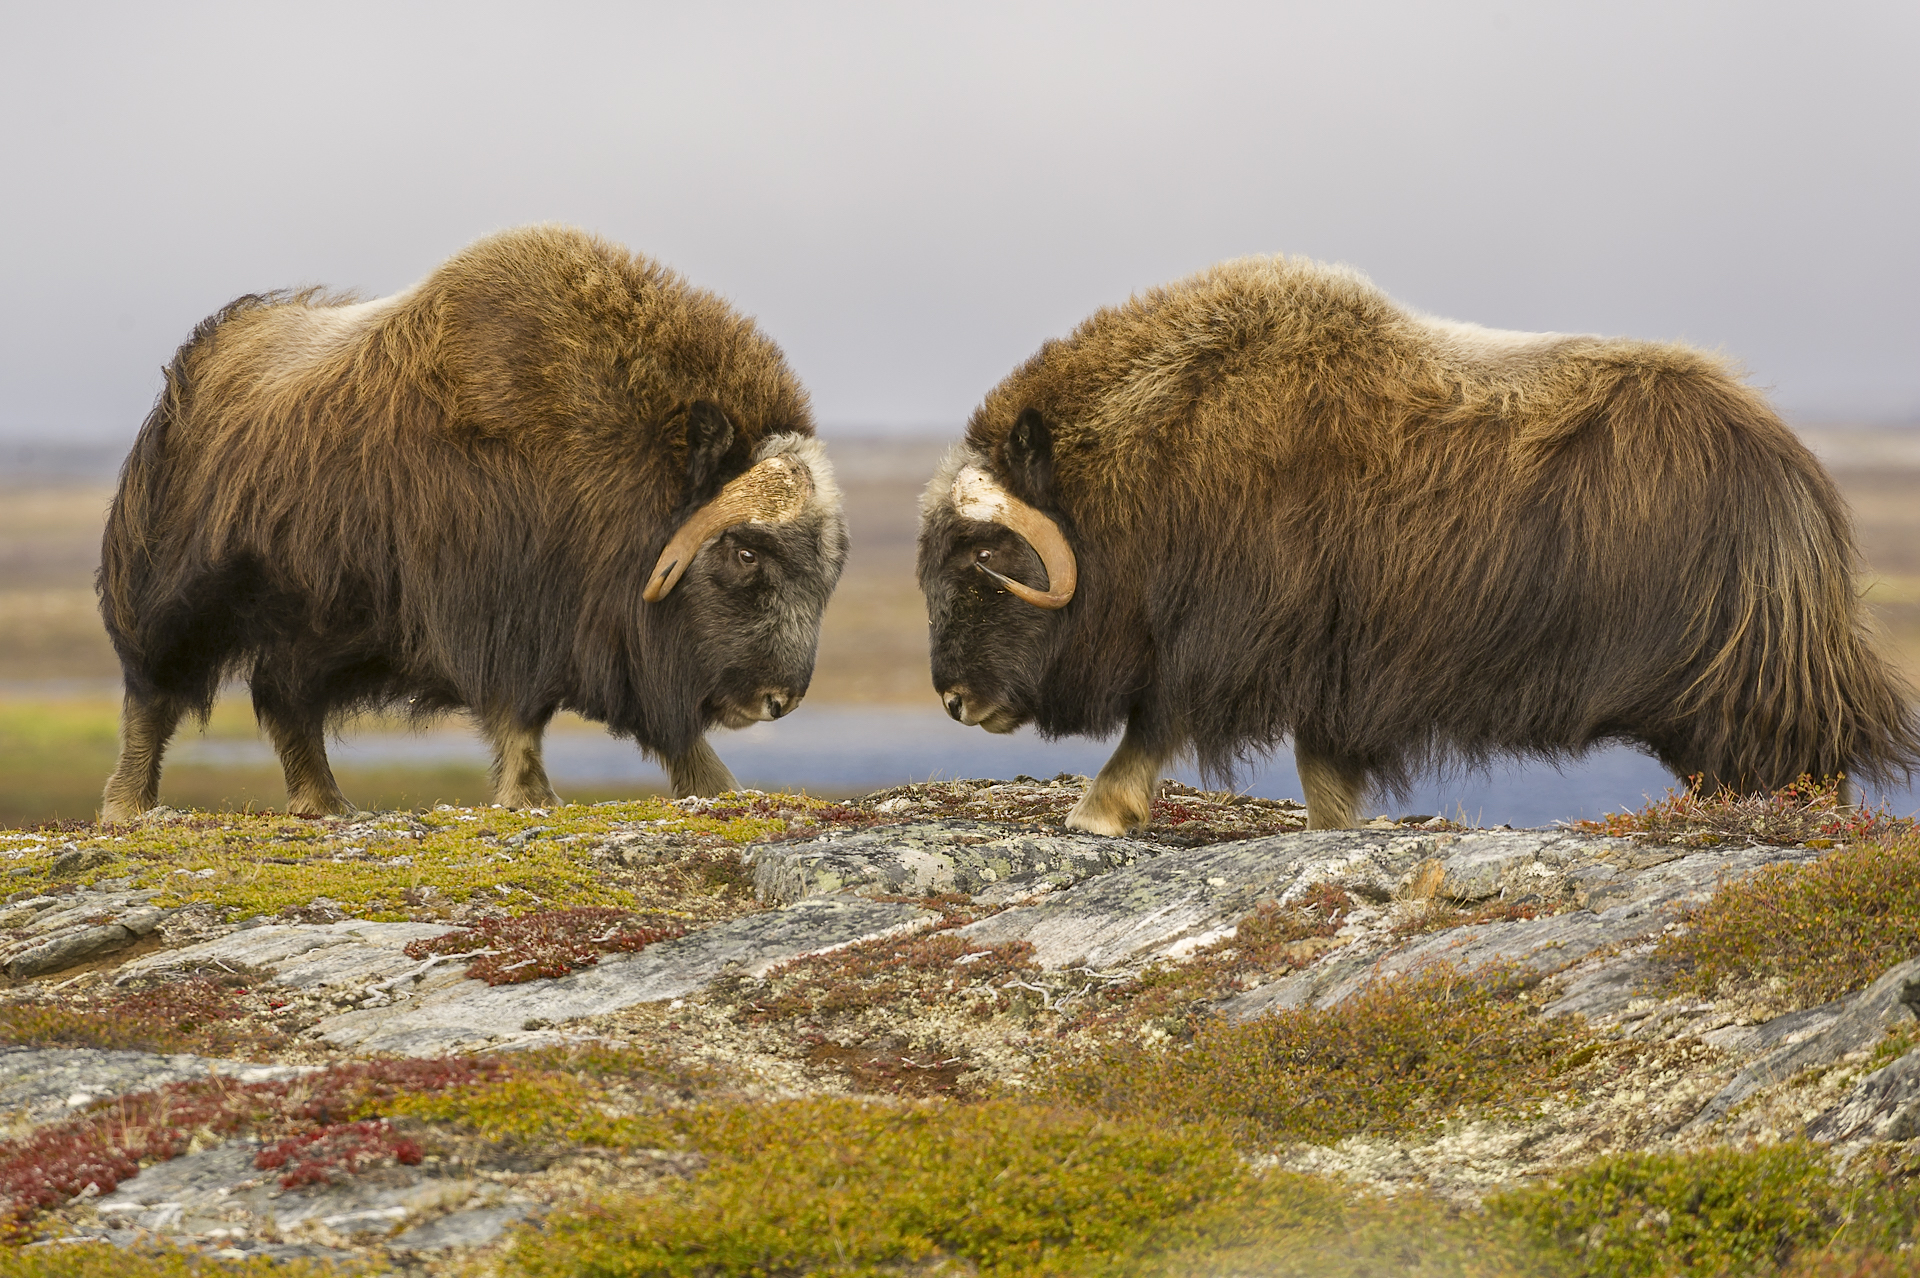 Head-butting muskoxen. Nunavik, northern Quebec